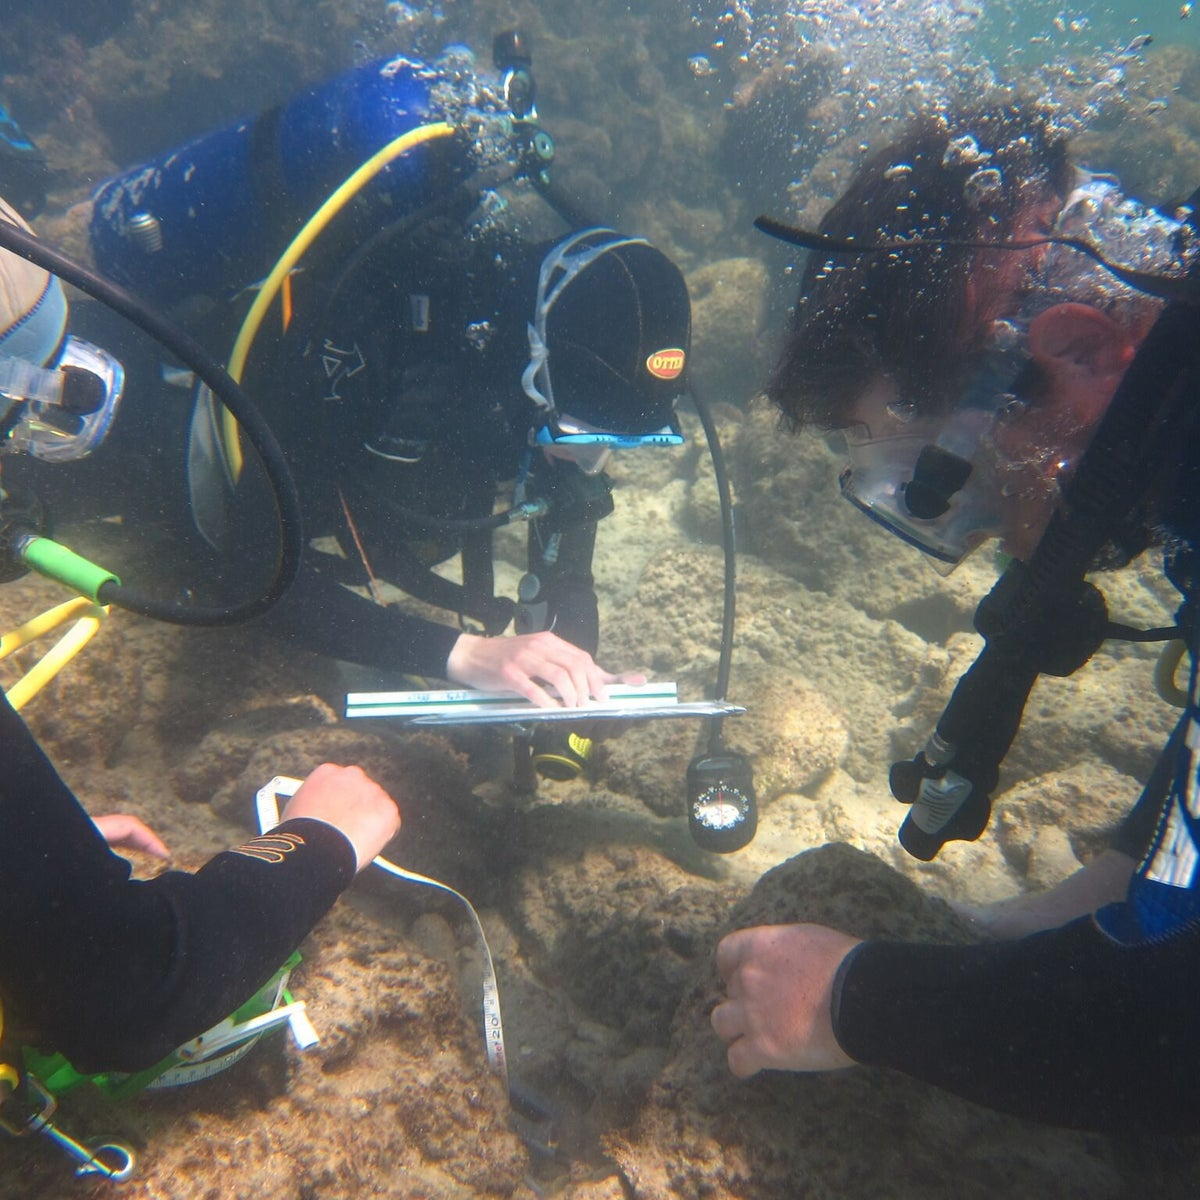 Haifa University diving archaeologists exploring the seabed off Tel Dor, where the remains of a Roman-era port have delivered anchors, ship bits, pottery... and a statue base from 1,900 years ago, revealing the name of a previously unknown governor of Judea: Gargilius Antiquus.